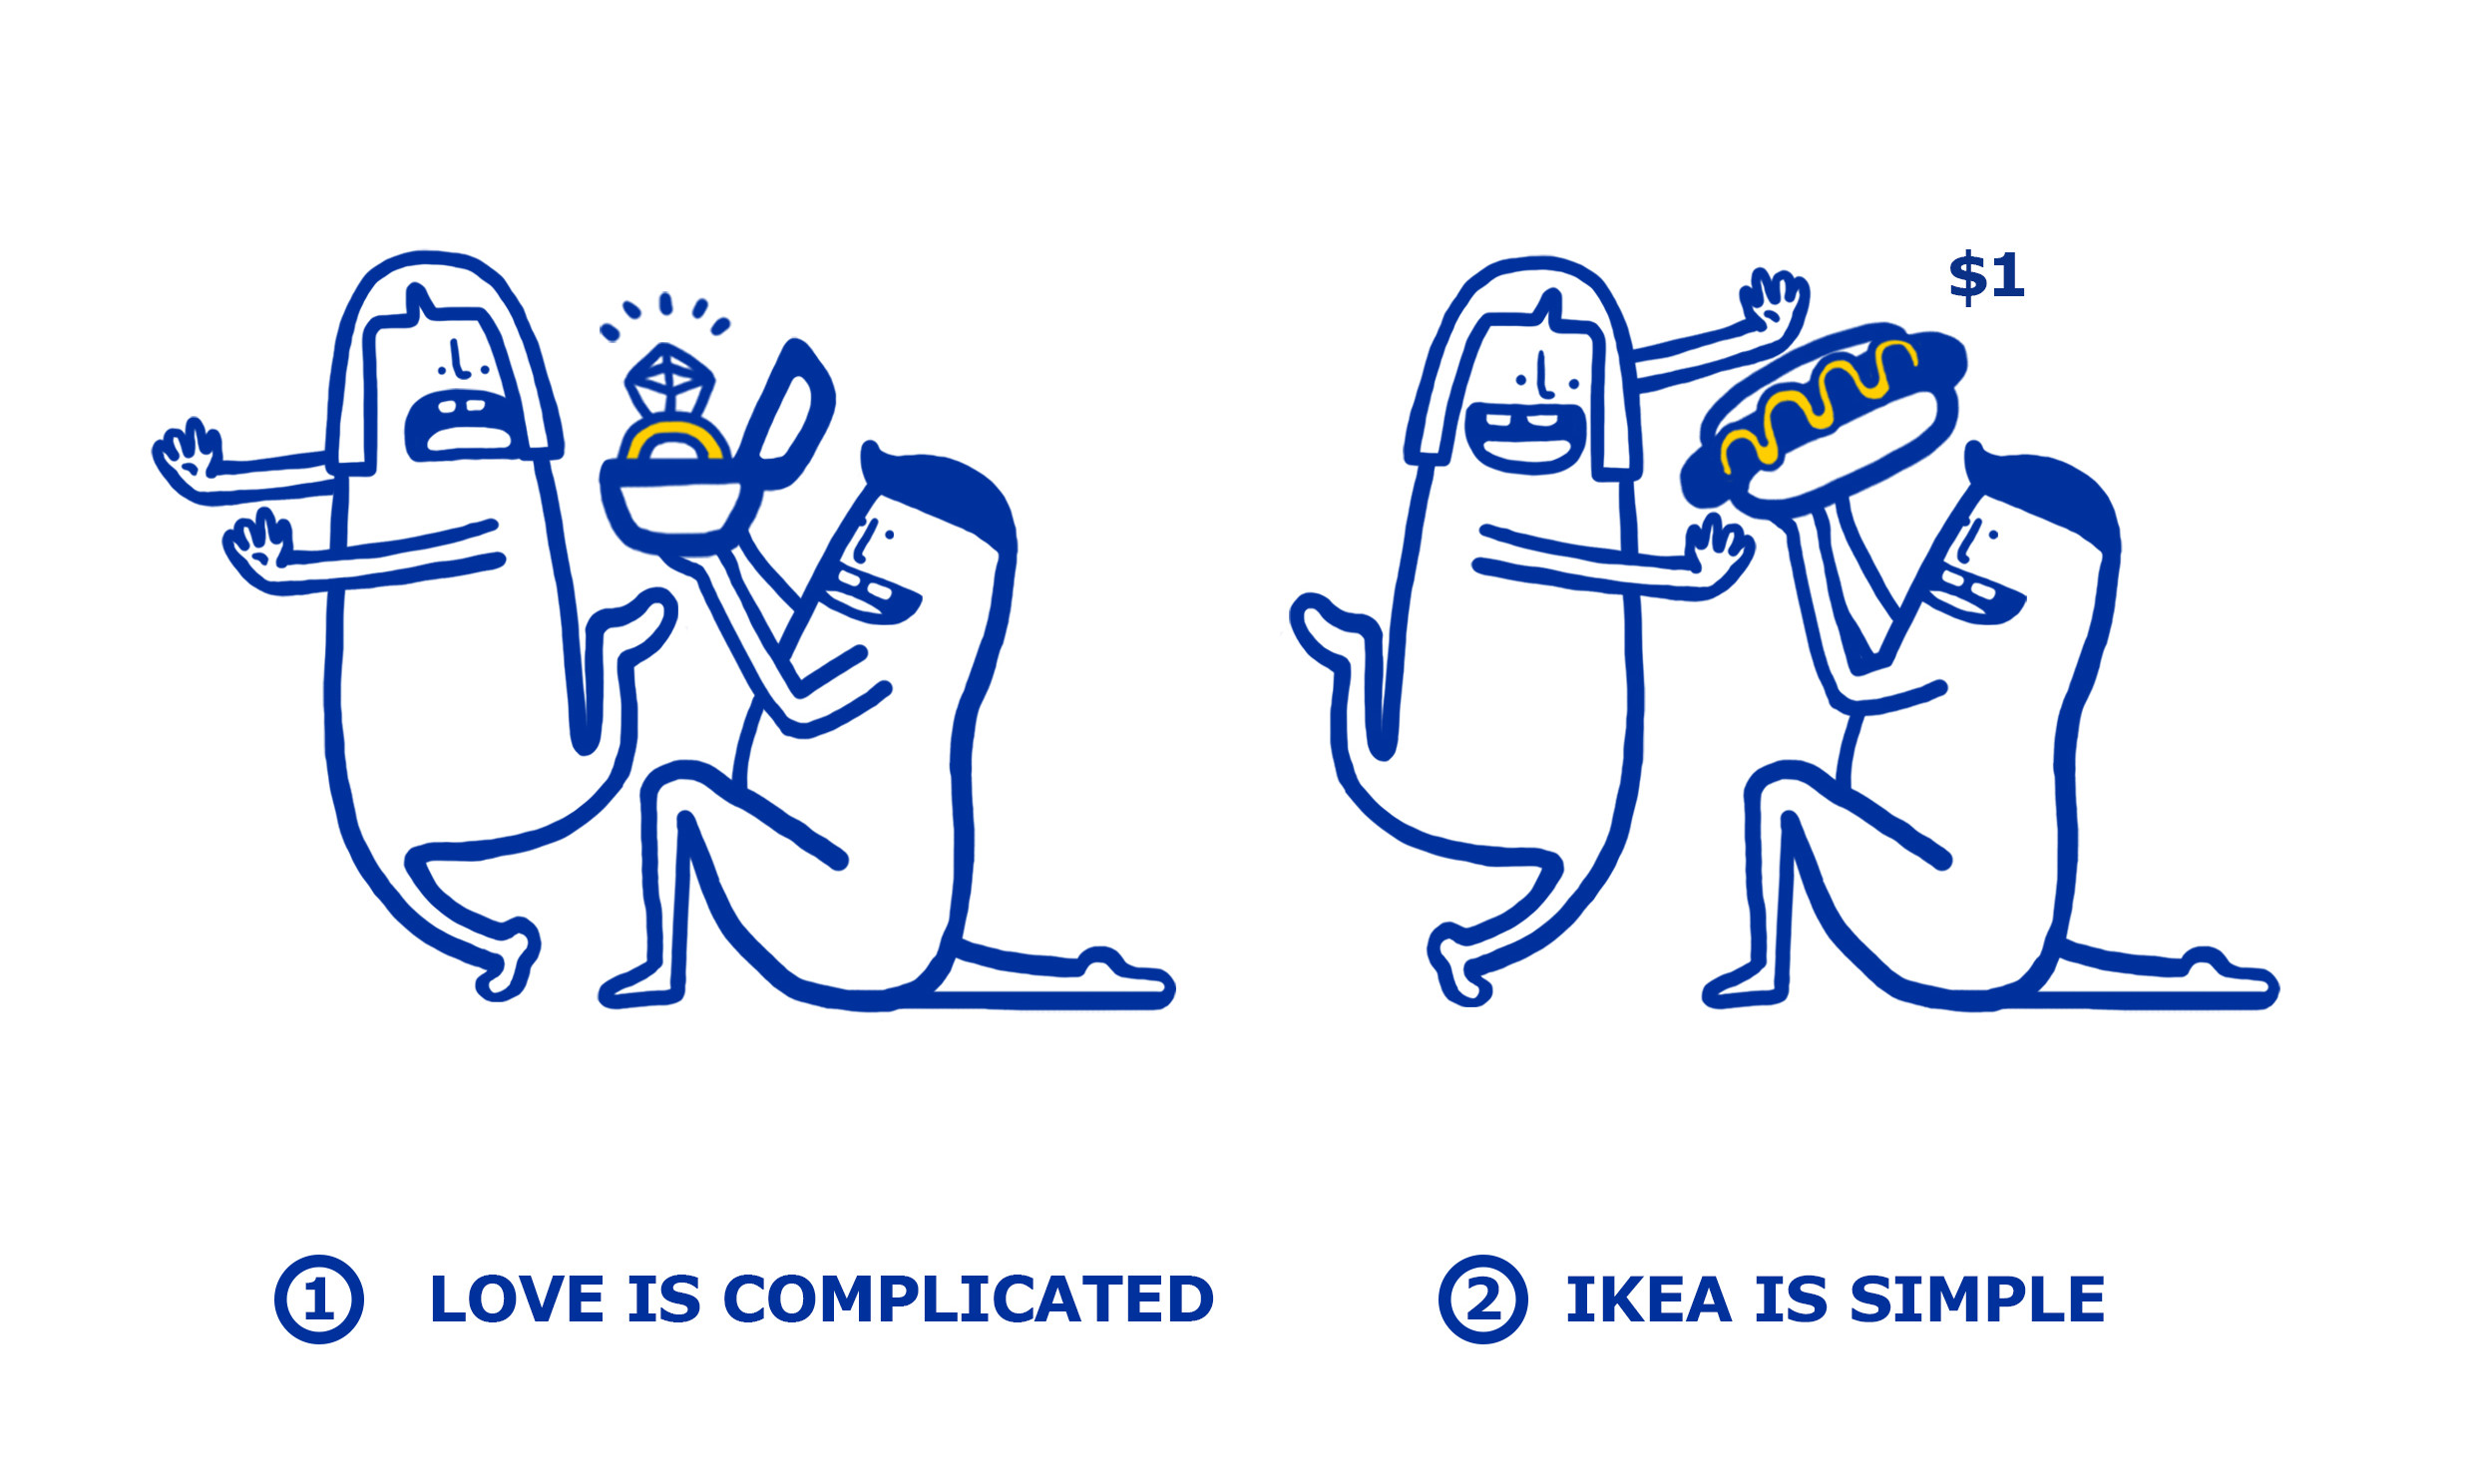 Look ikea simplifies your complicated love problems for Ikea immagini divertenti